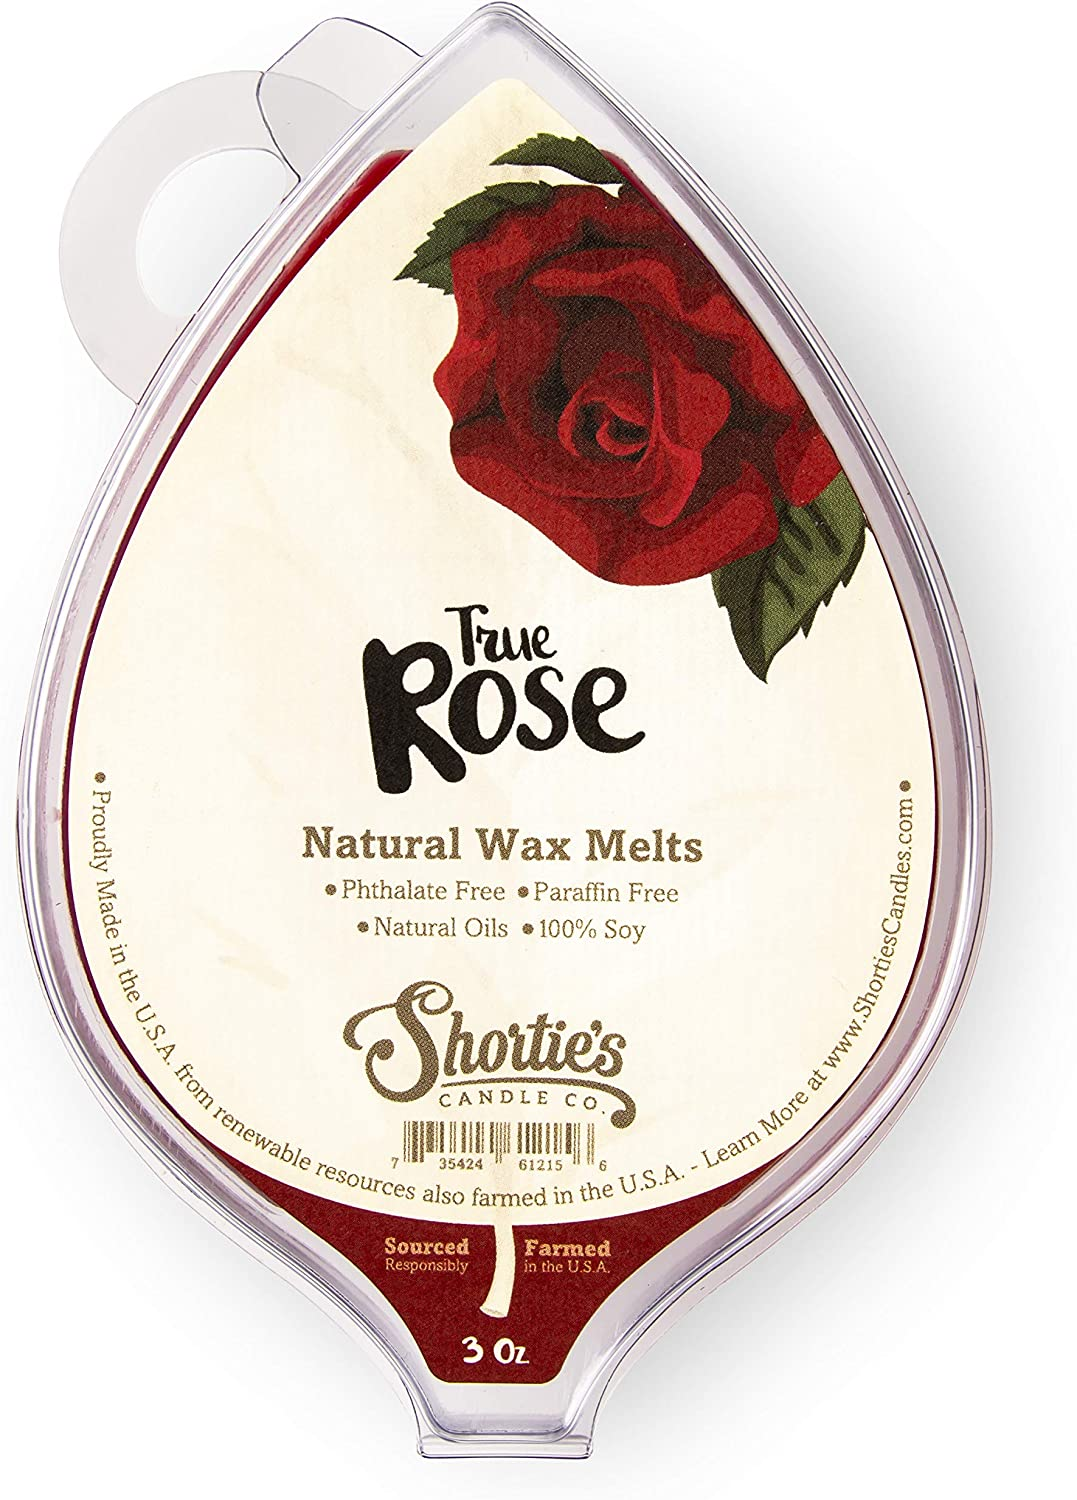 Shortie's Candle Company True Rose Soy Wax Melts - All Natural - Made with Responsibly Sourced Soy and Essential Fragrance Oils - Phthalate & Paraffin Free, Vegan, Non-Toxic